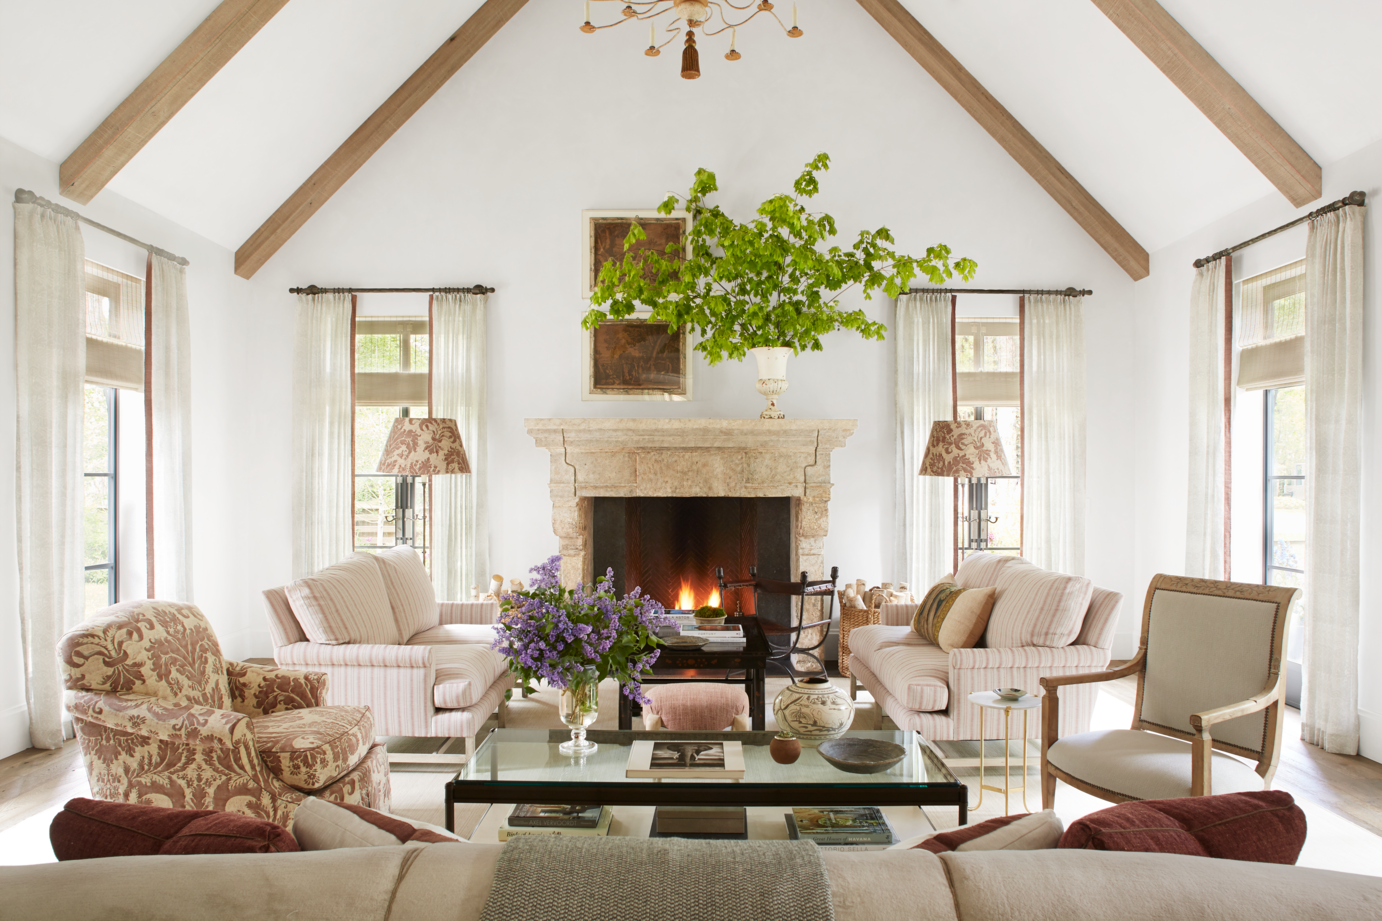 10 Fireplace Ideas 10 - Best Fireplace Designs in Every Style